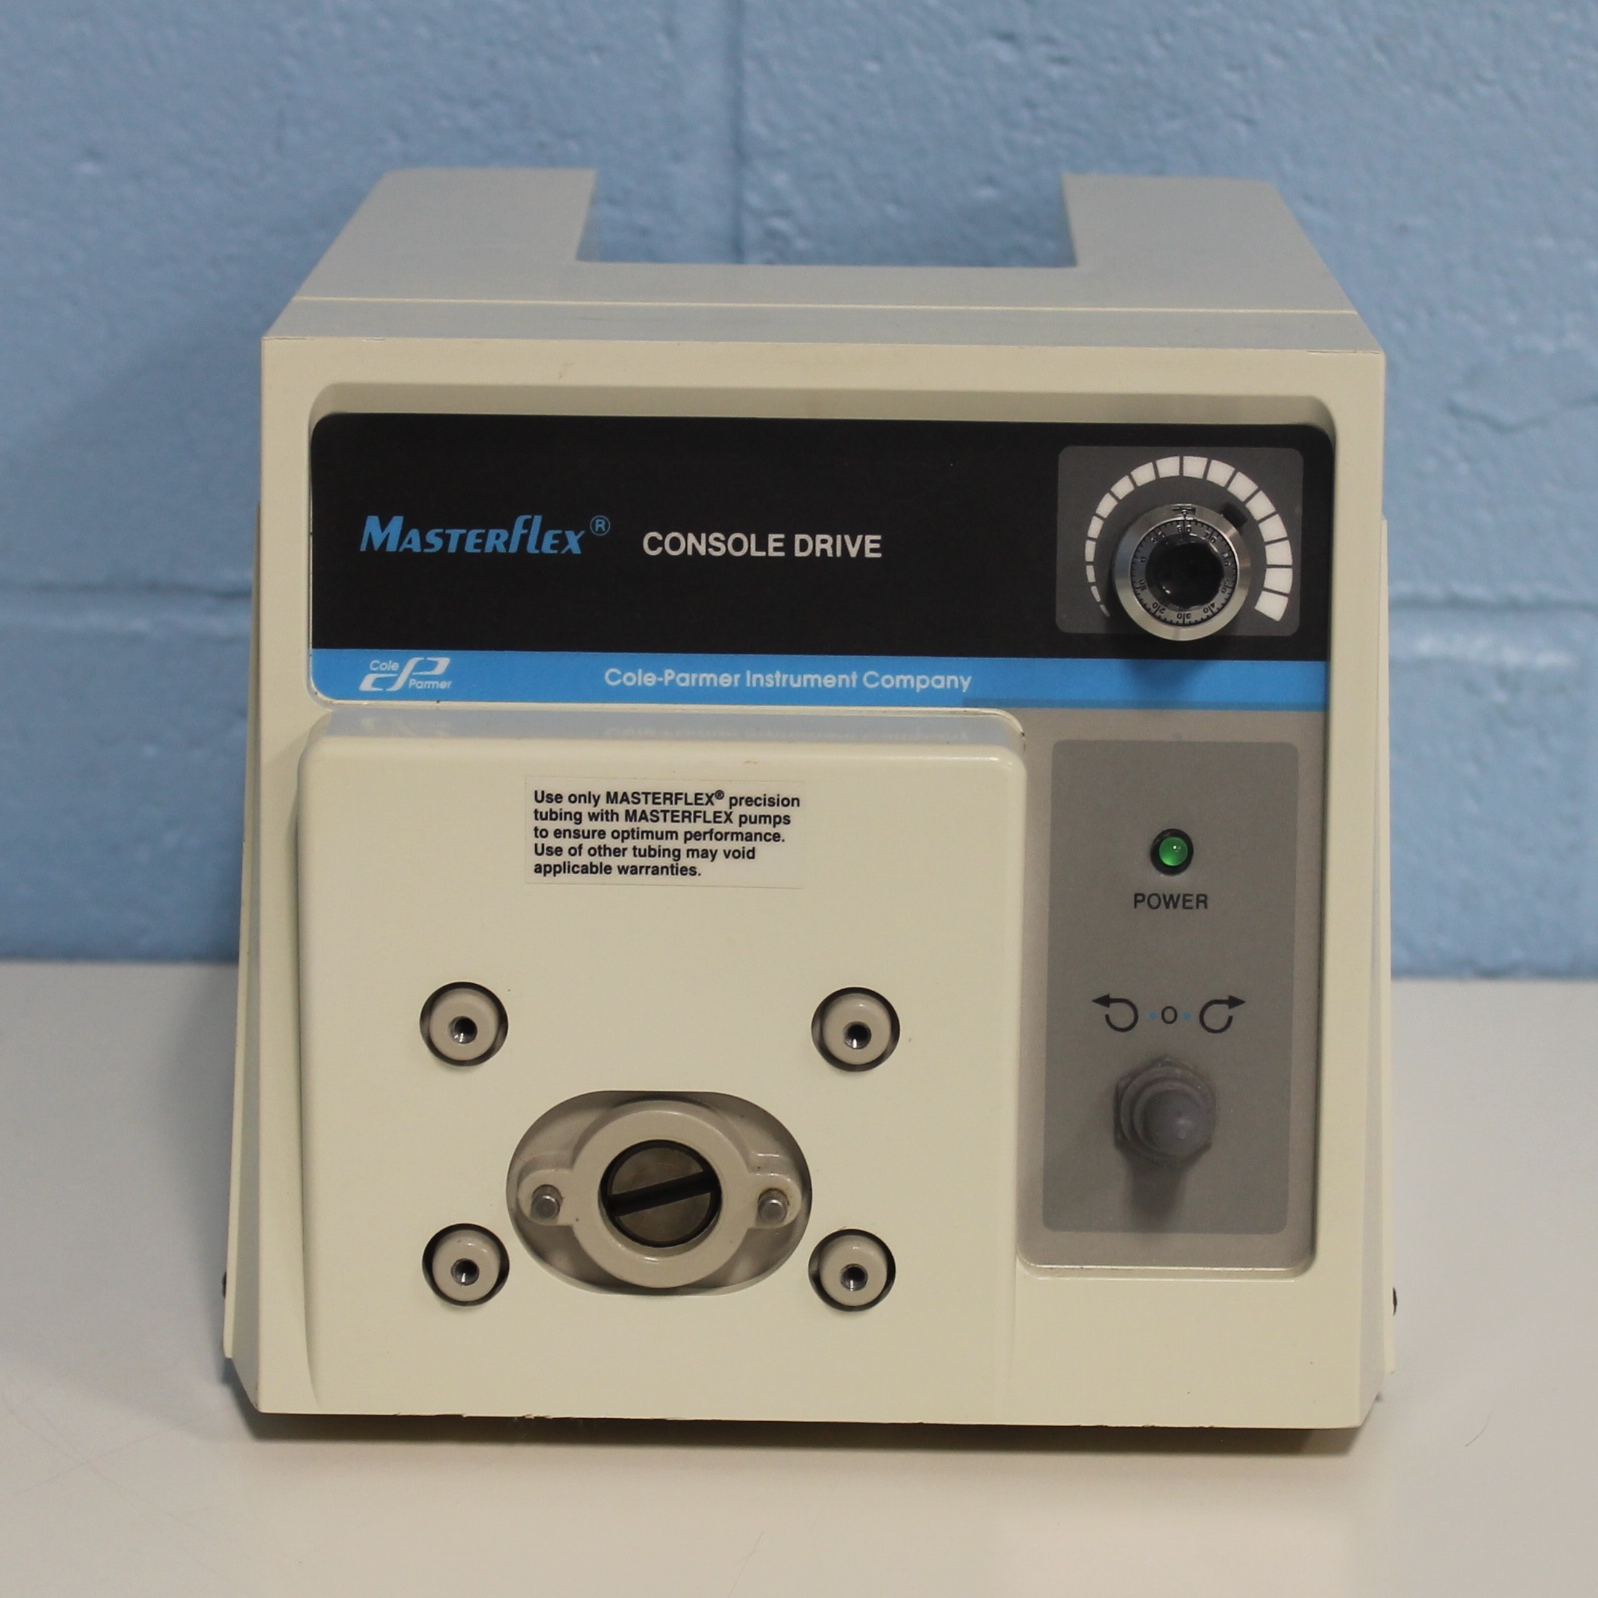 Masterflex L/S Variable-speed Drive with 10-turn Speed Control and Remote Capabilities, 1 to 100 rpm, 115 VAC. Model 77521-50